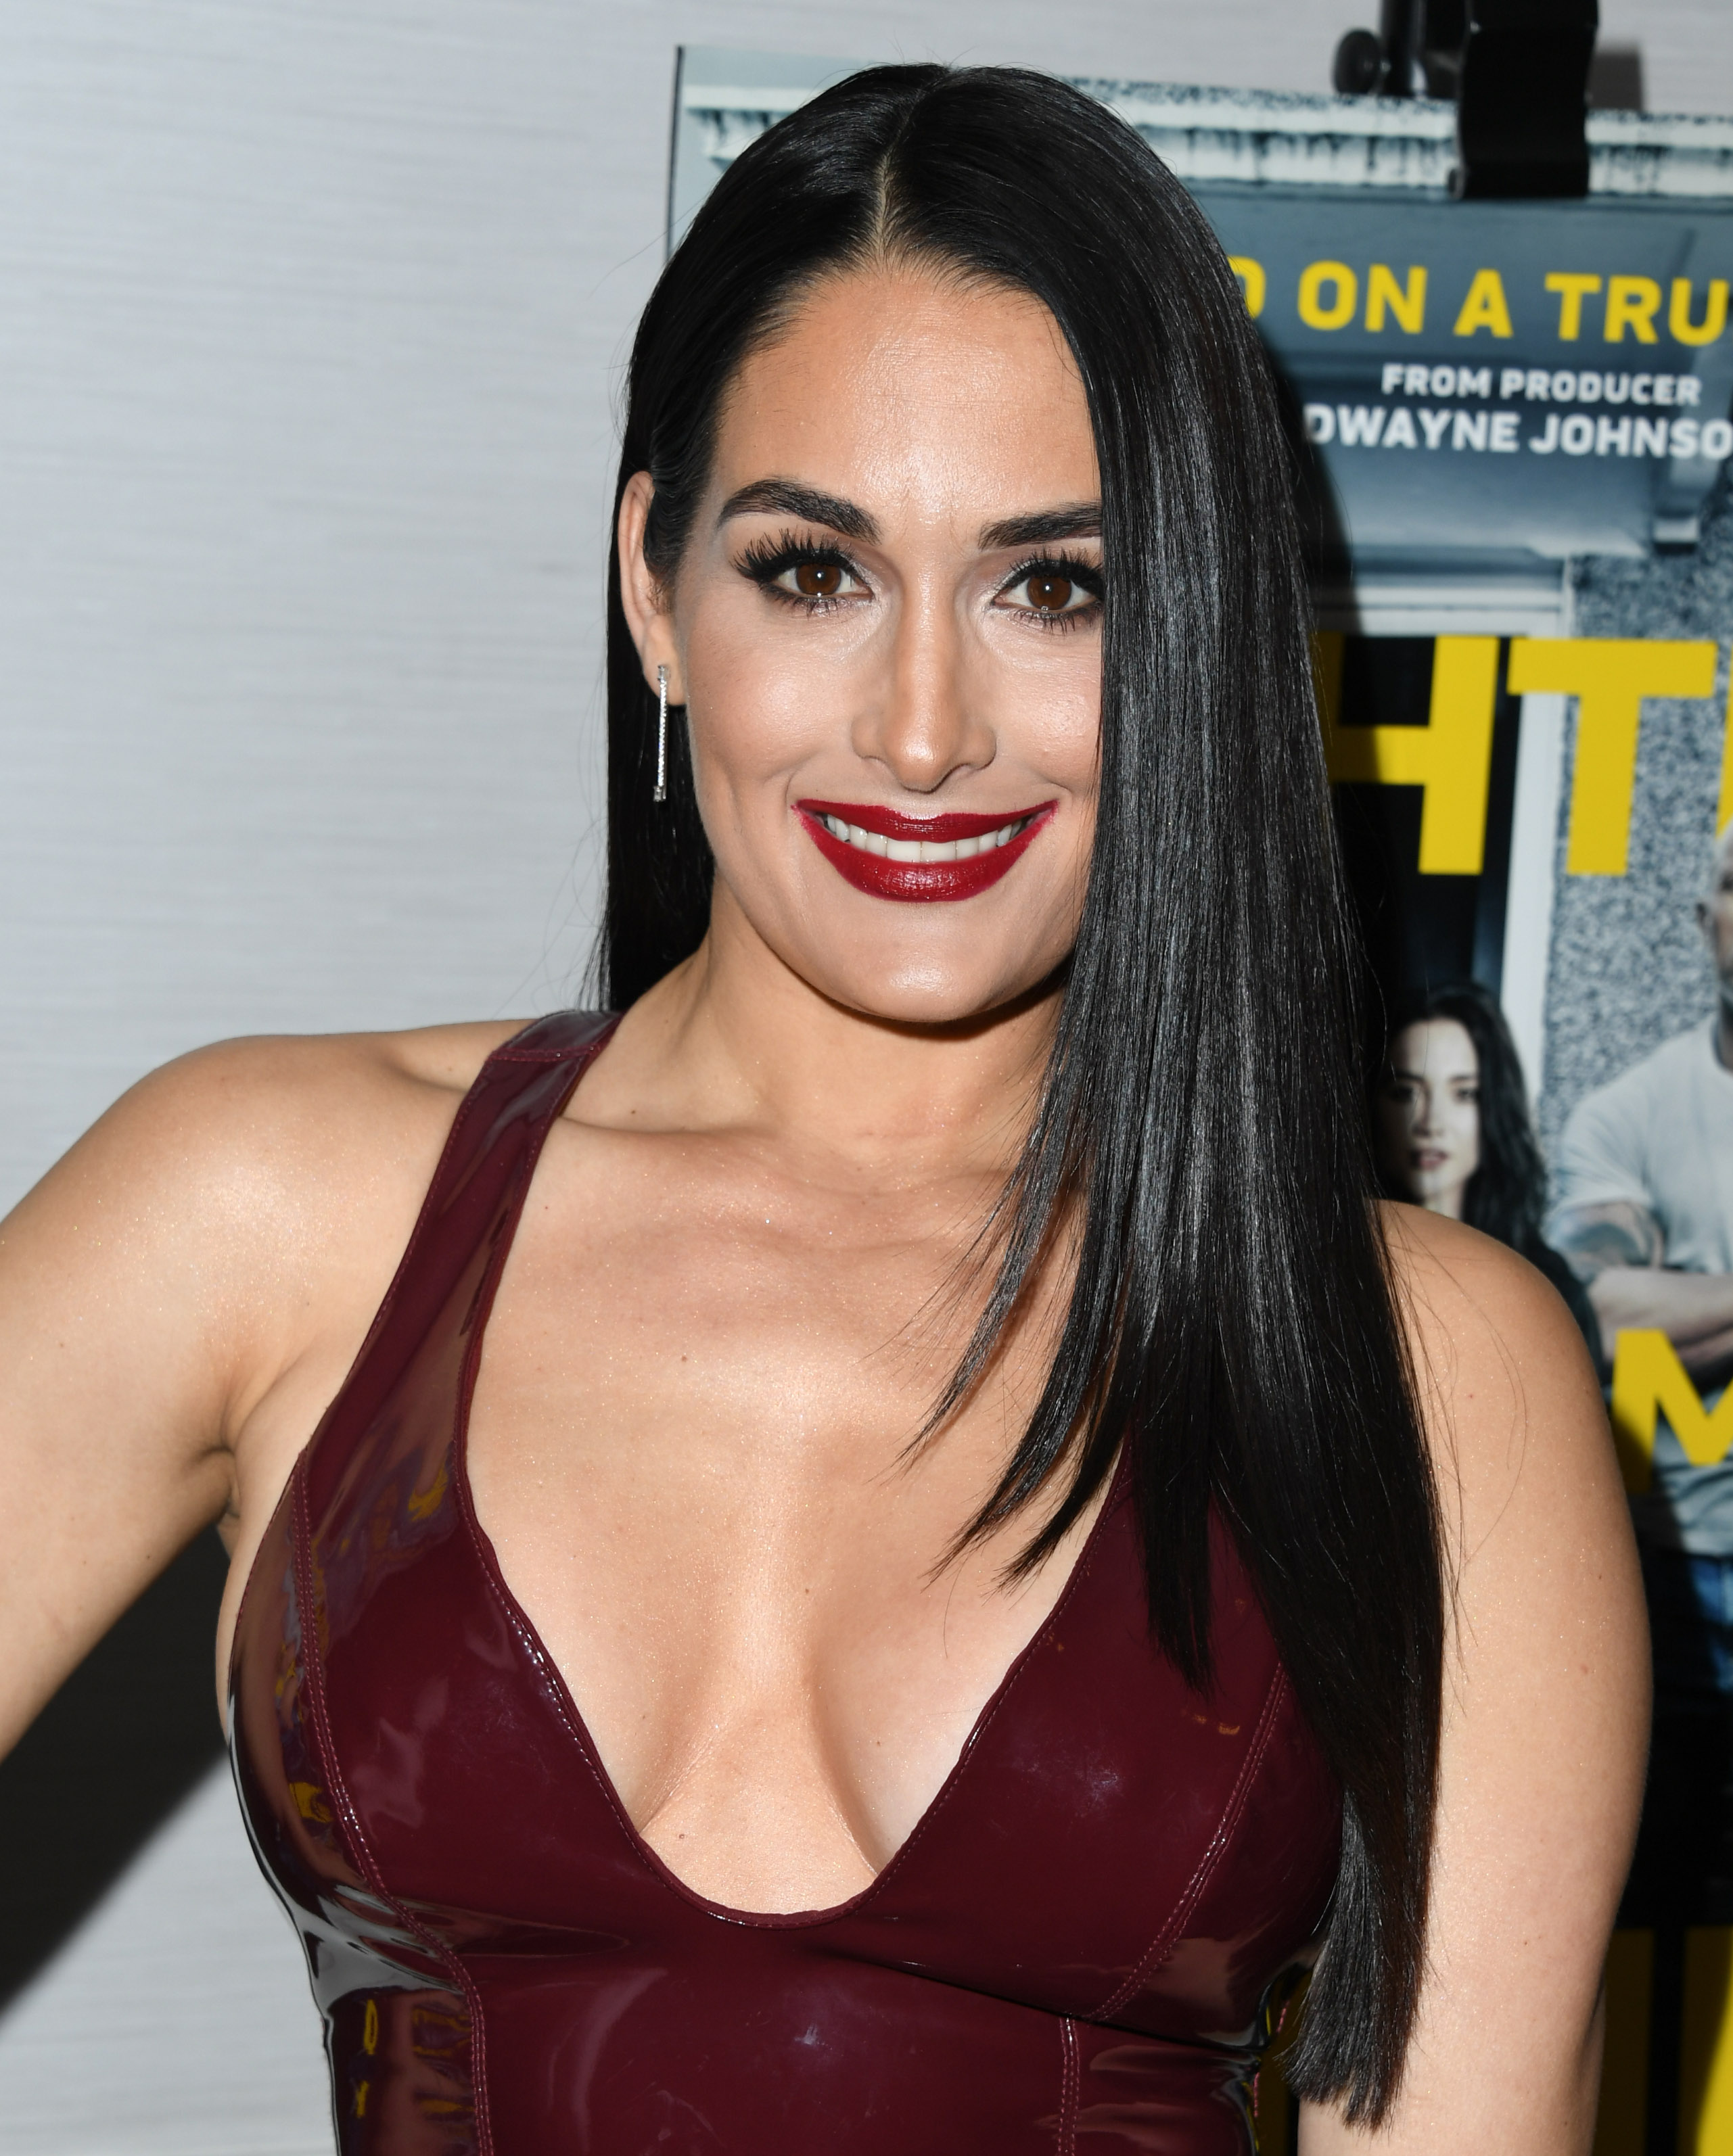 EXCLUSIVE: Nikki Bella spills the beans on sharing the WWE ...